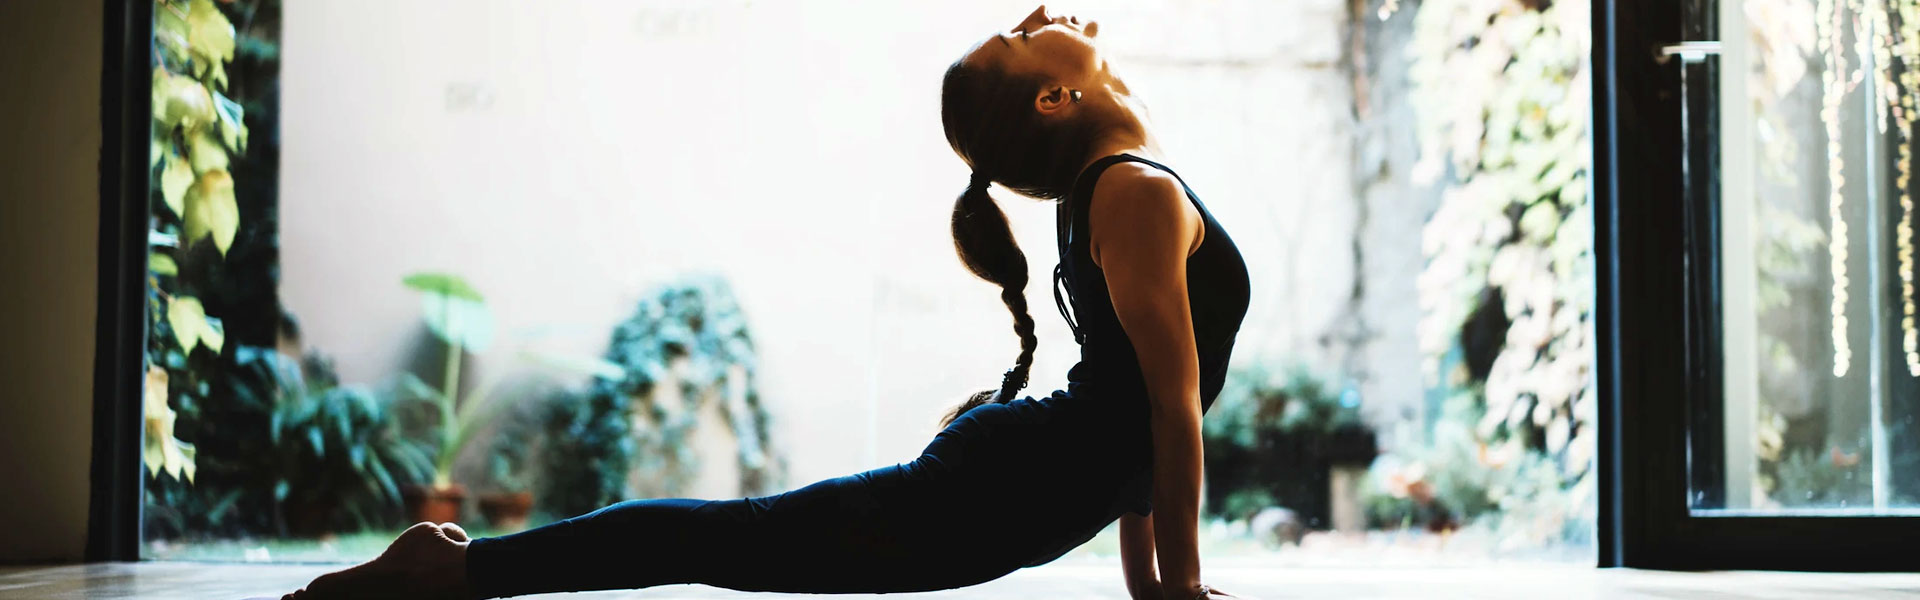 Wellness Programs: Here's What You Need to Know About Their Benefits